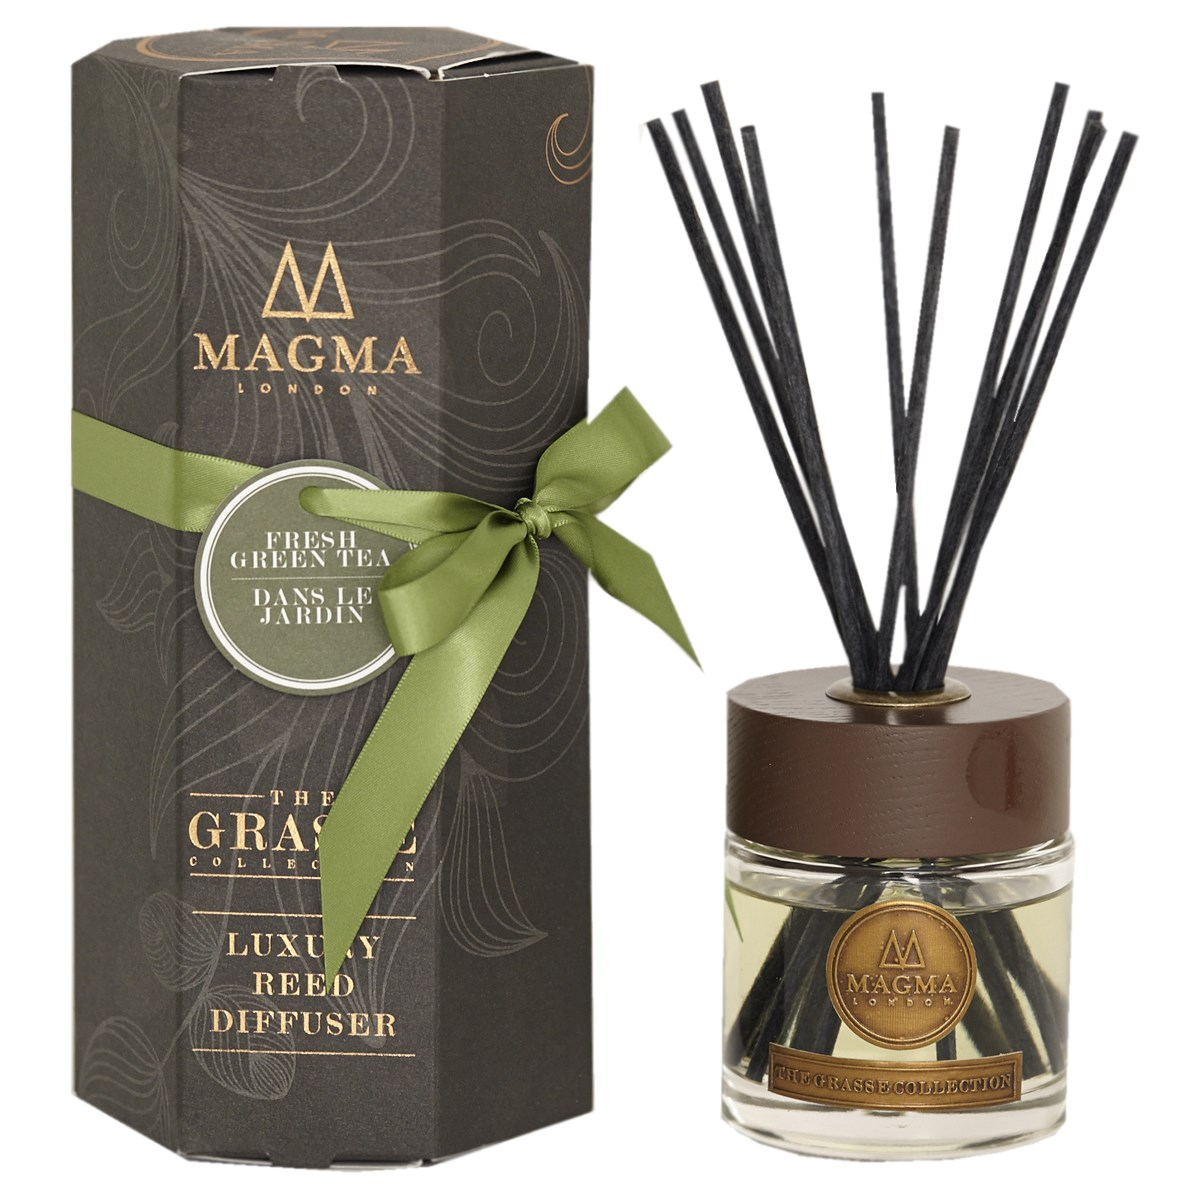 Magma London The Grasse Collection Luxury Reed Diffuser - Fresh Green Tea